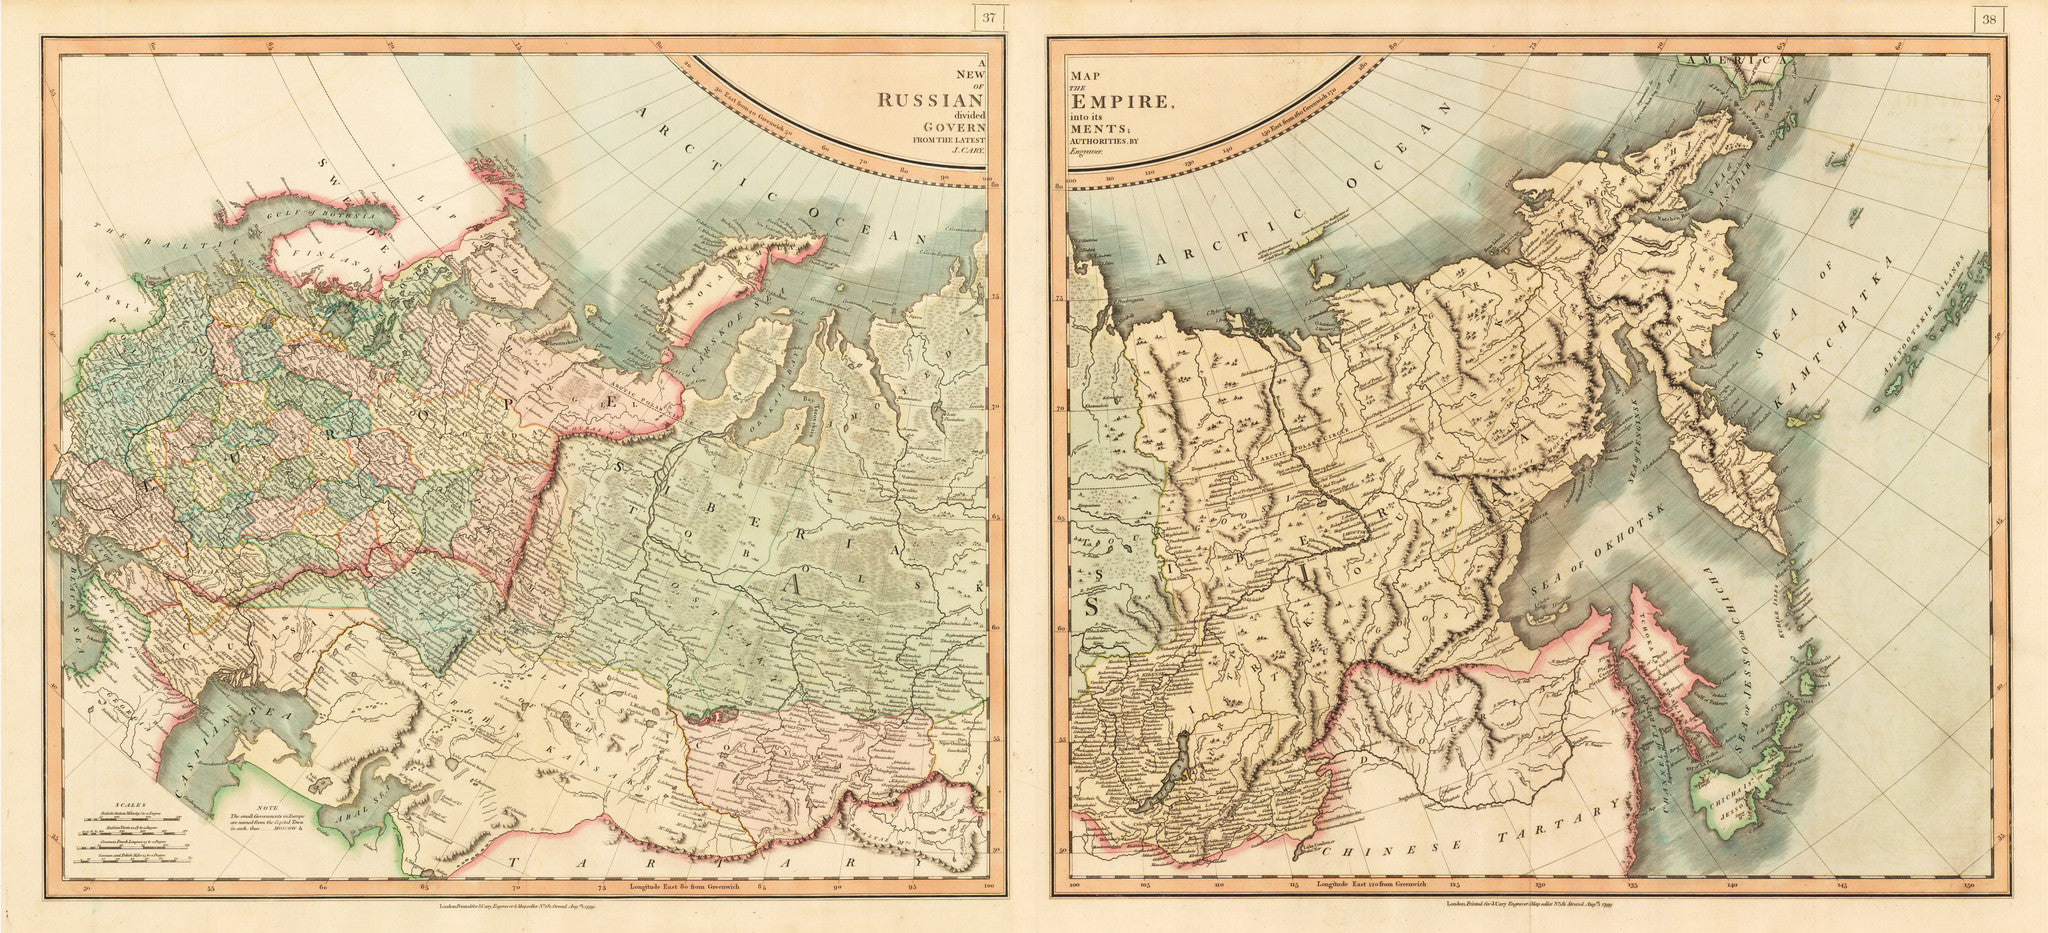 1799 A New Map of the Russian Empire Divided into its Governments From the Latest Authorities